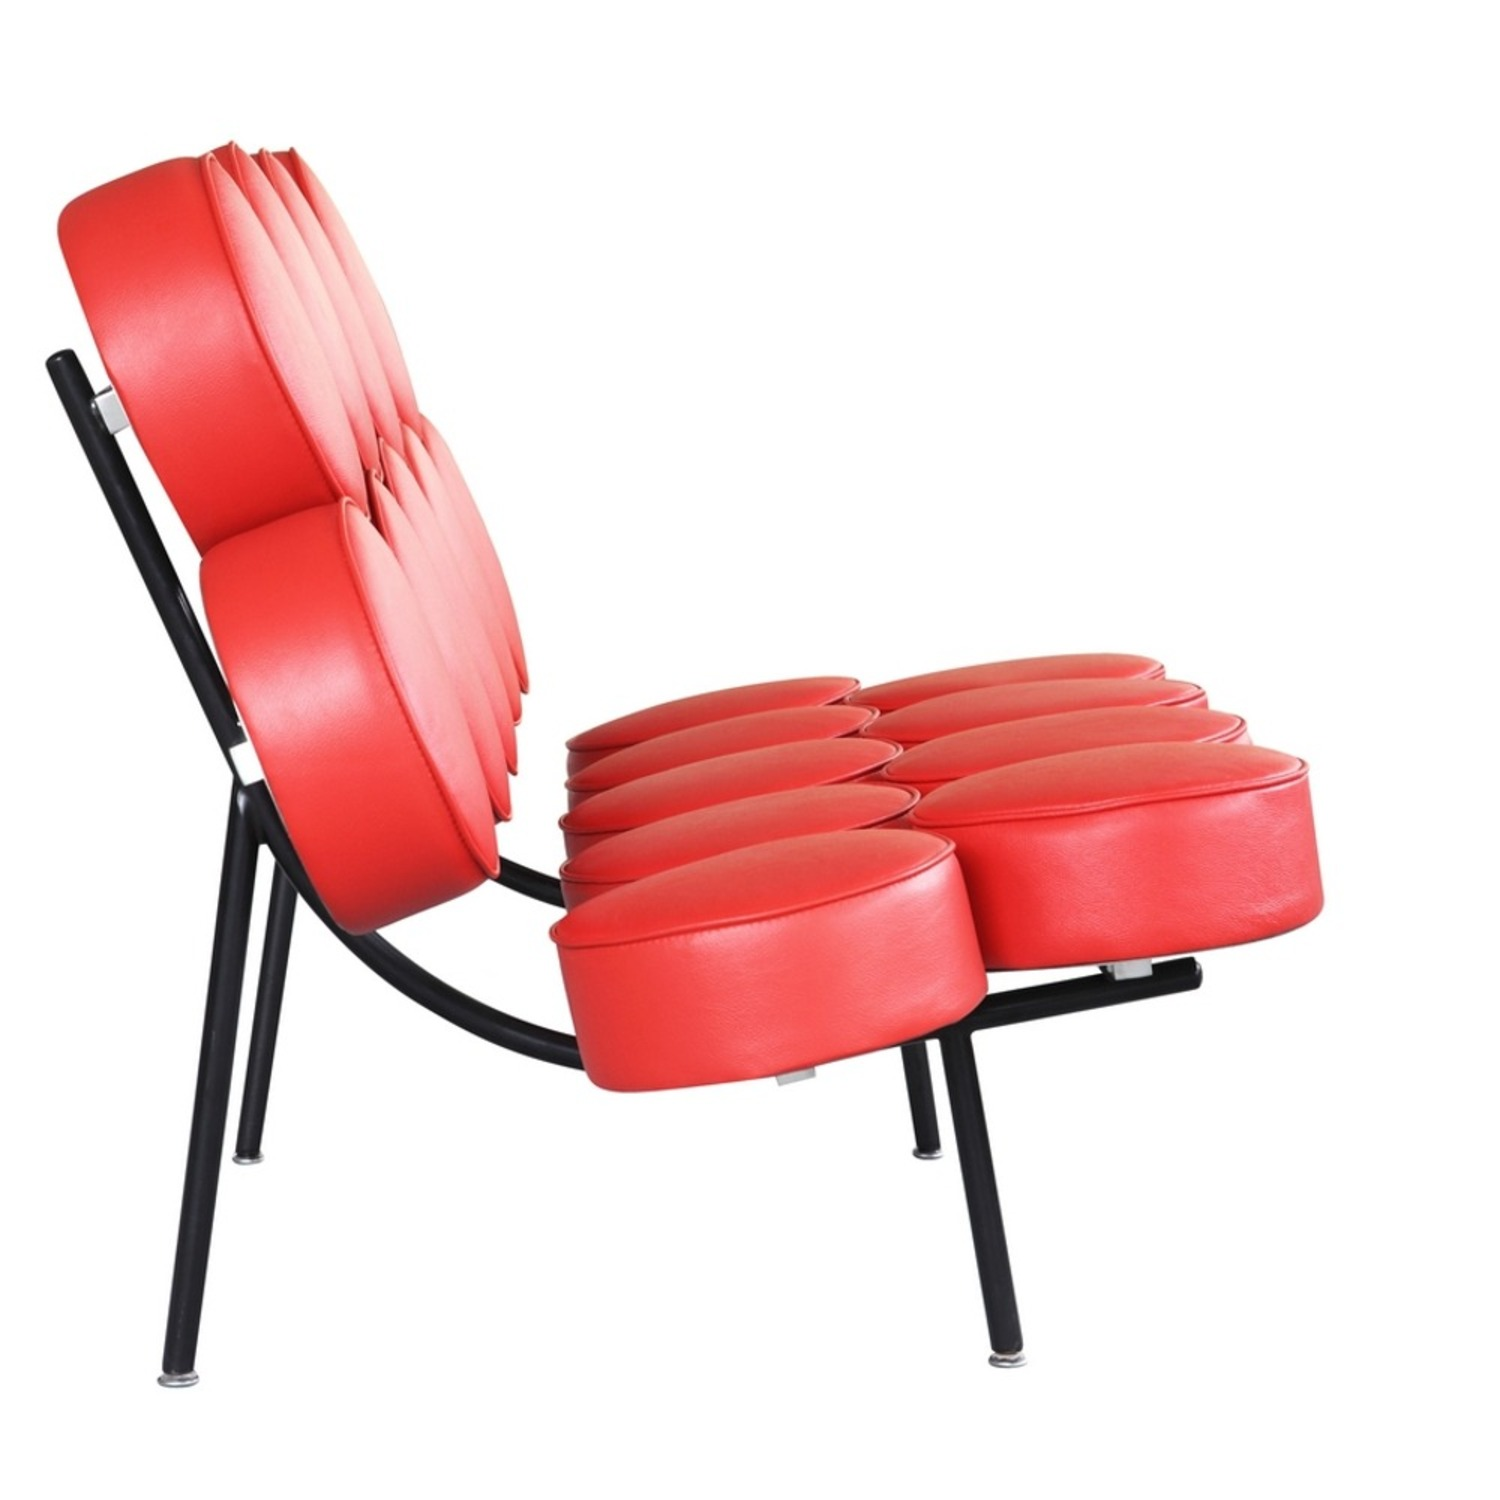 Sofa In Red Leather W/ Circle Seat & Back Design - image-1